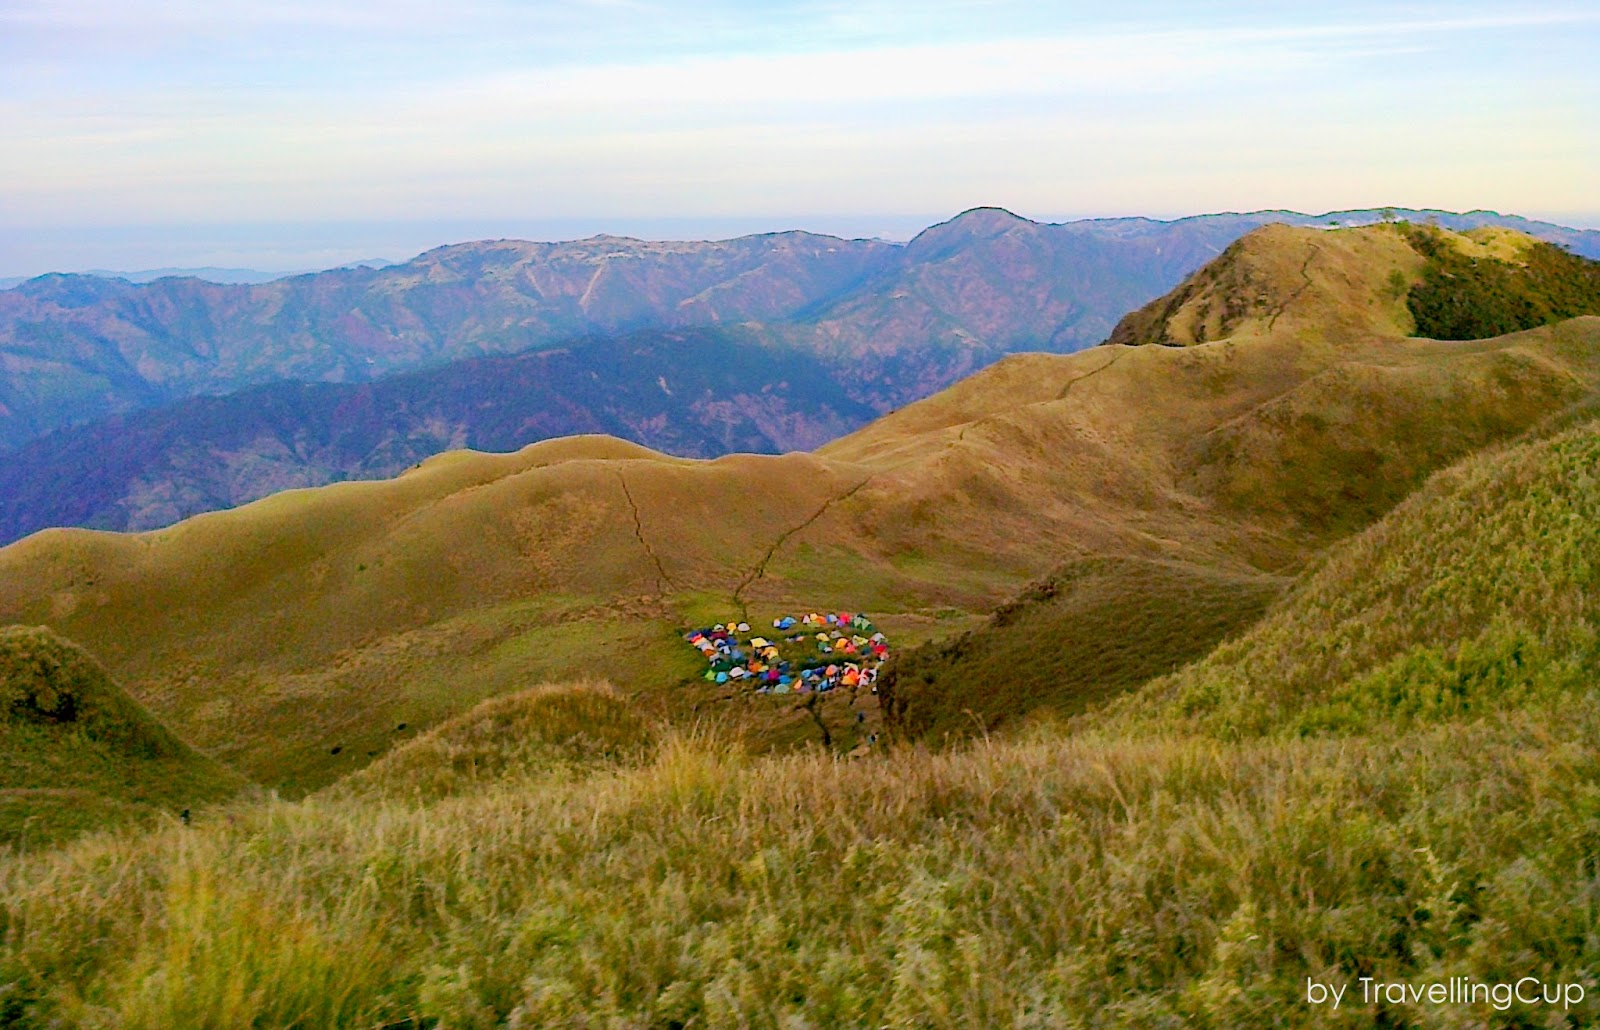 Mt. Pulag Camp site